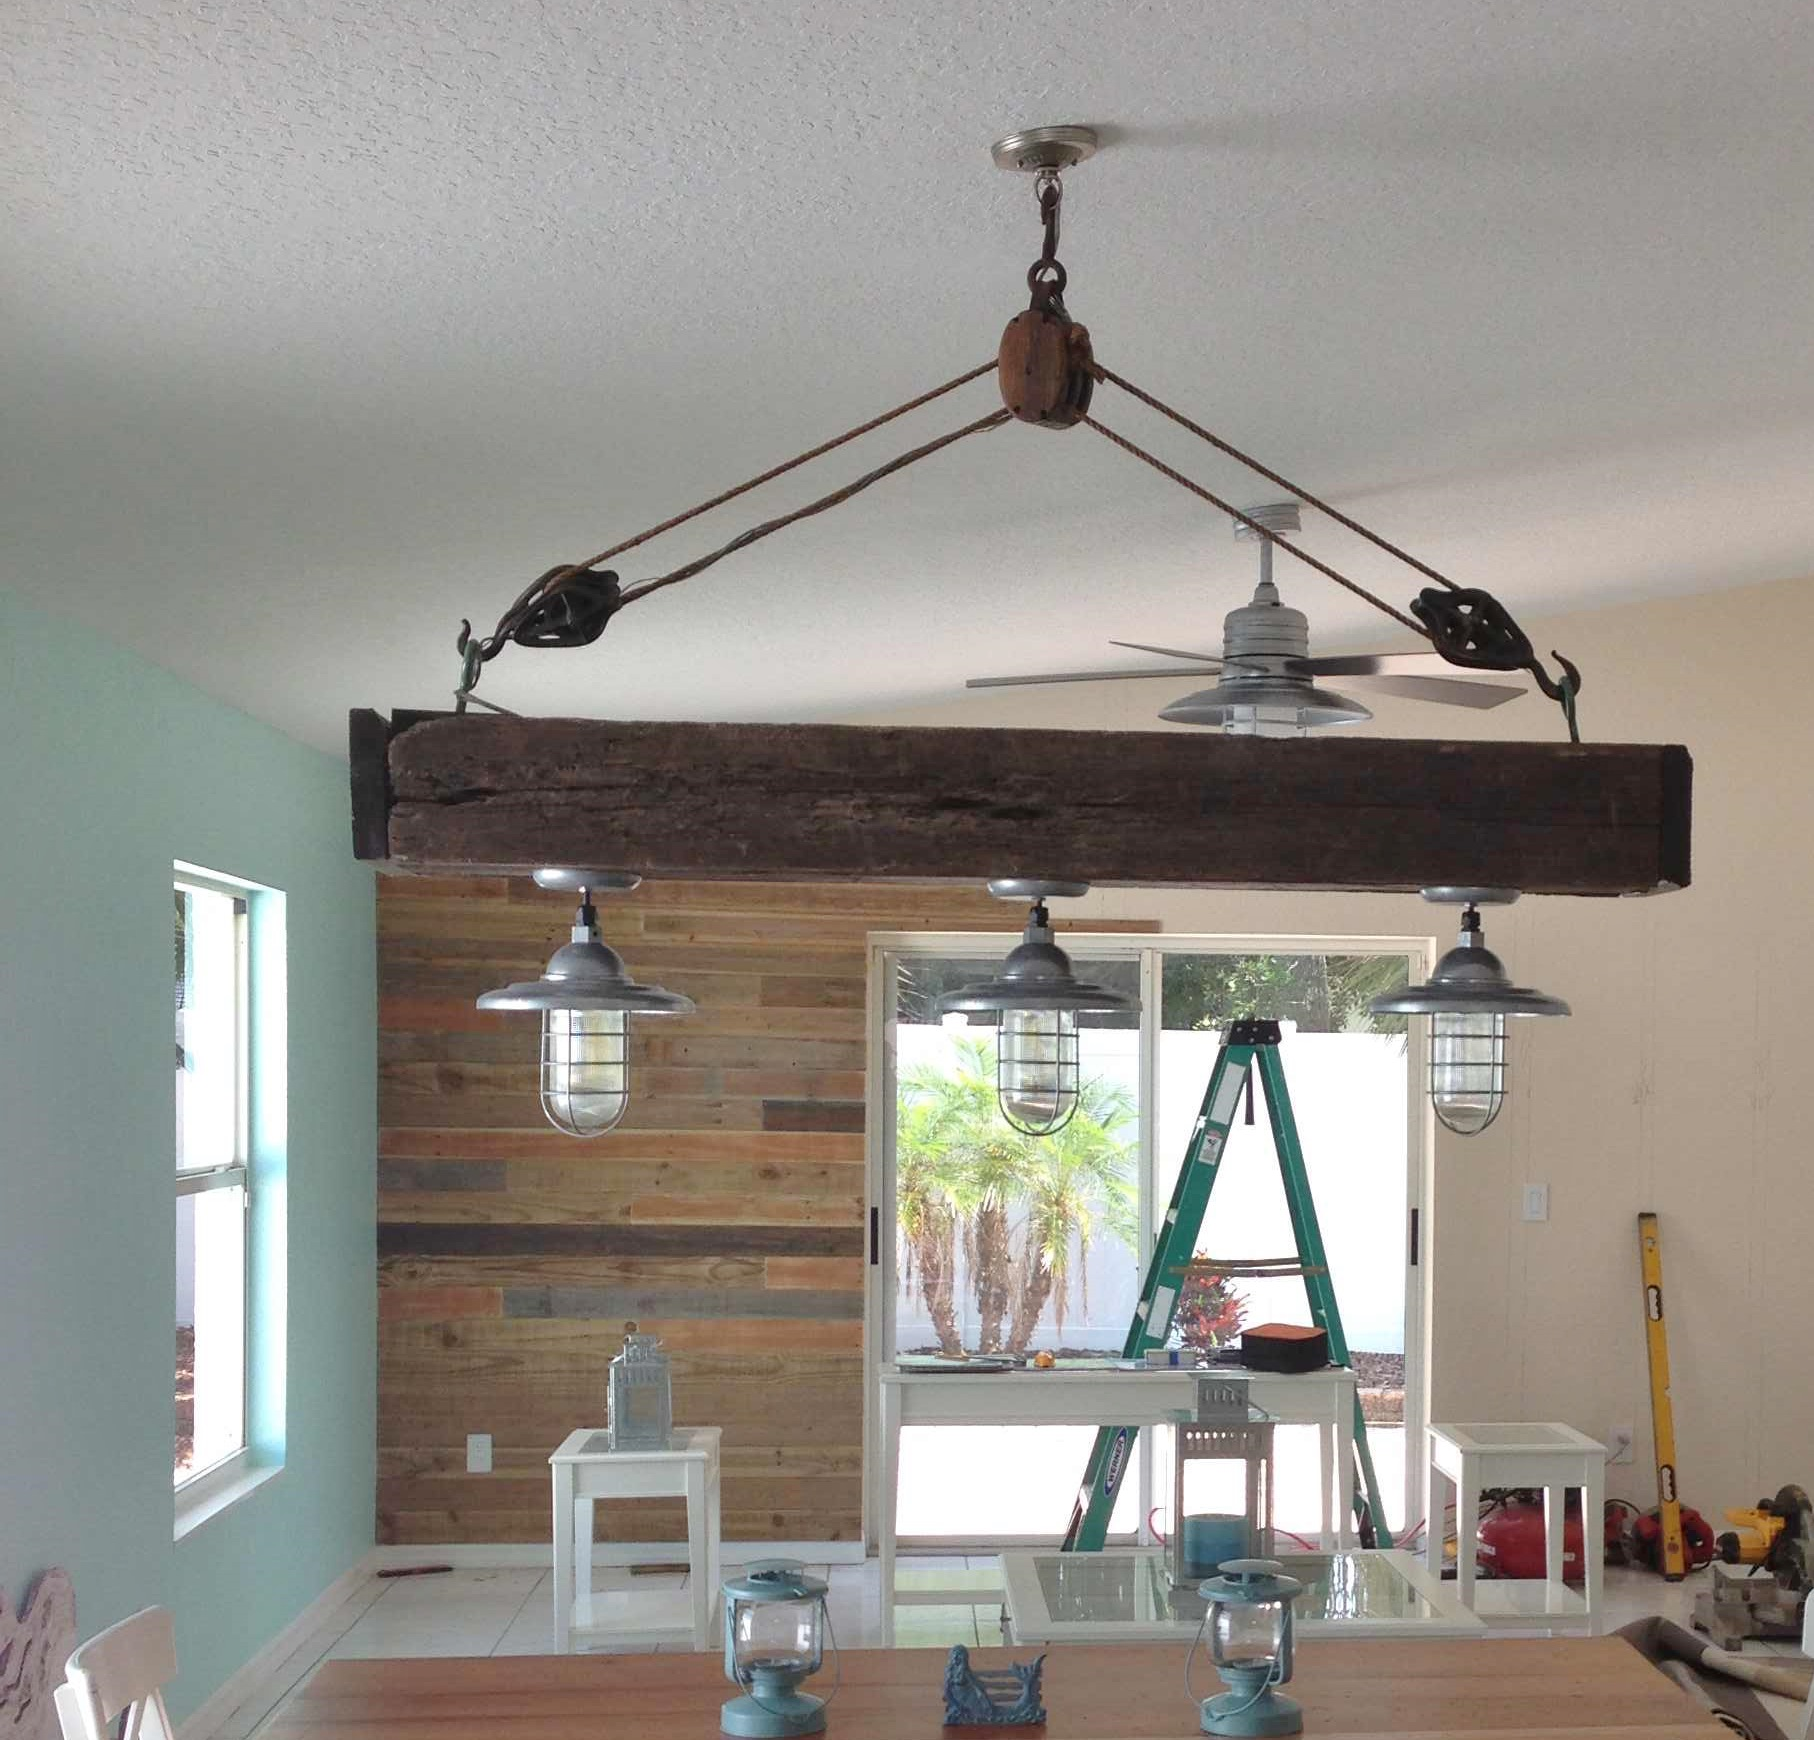 Barn Type Light Fixtures: Atomic Pendants Flavor Remodeled Beach Home With Nautical